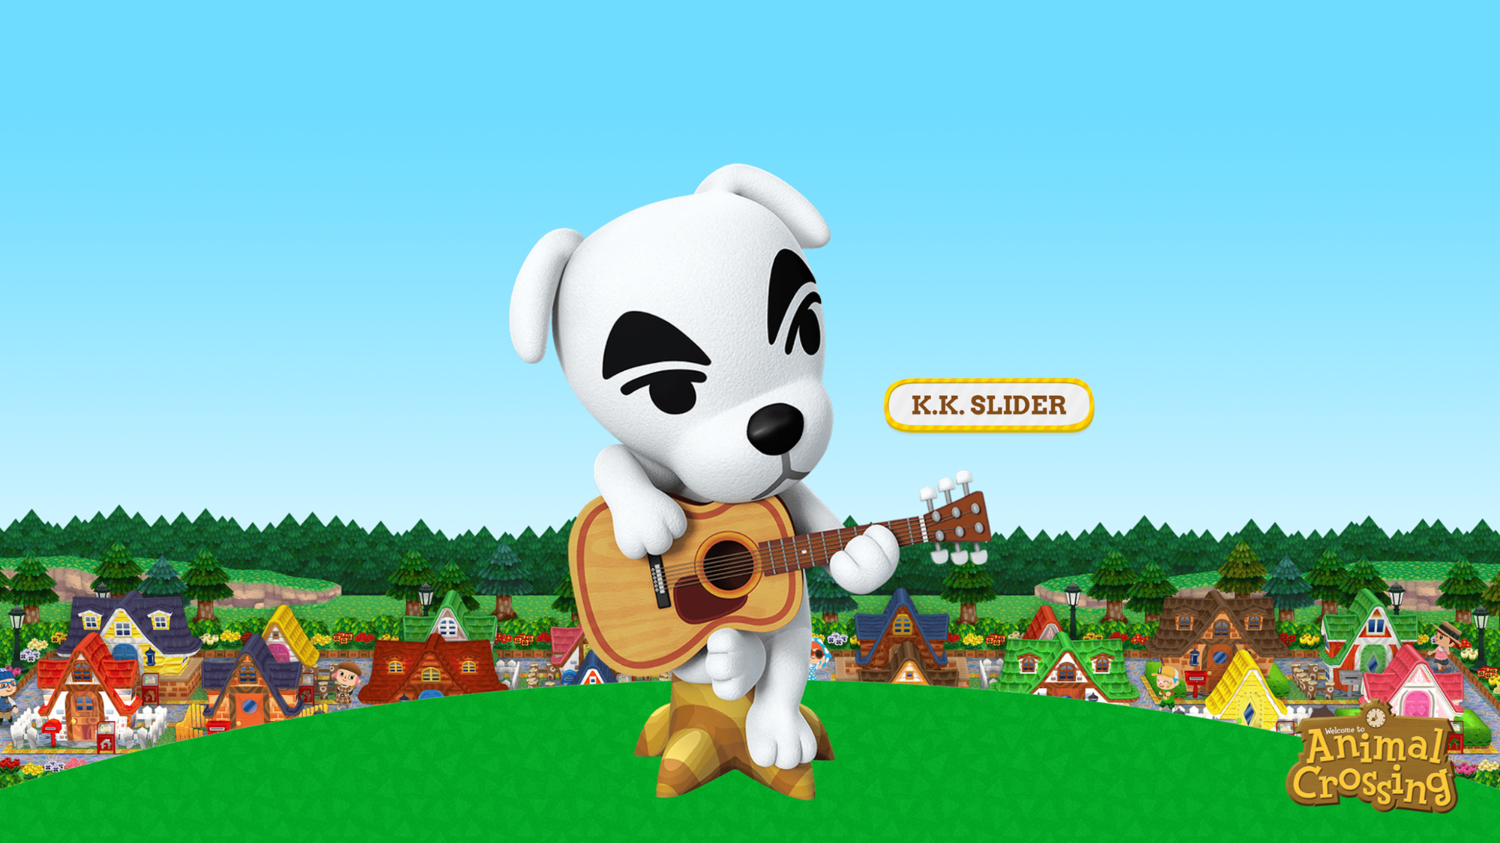 Top 10 K K Slider Songs Of All Time Afterglow